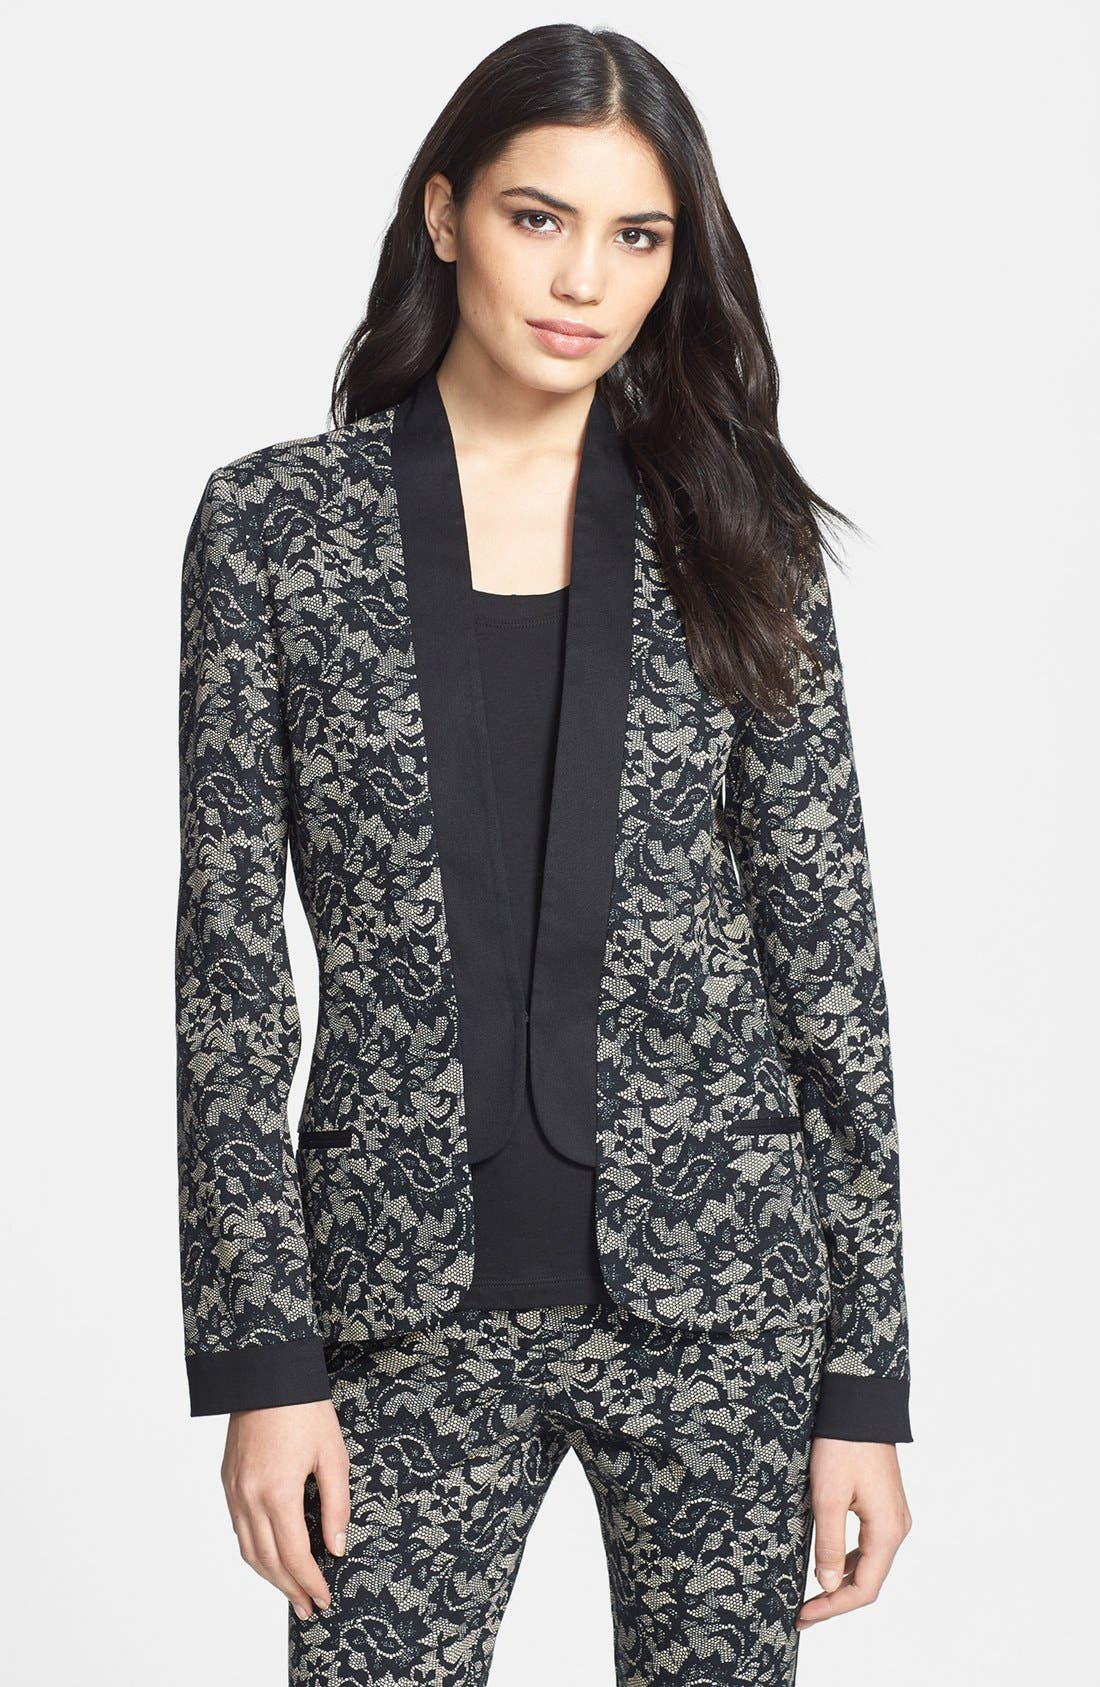 Alternate Image 1 Selected - Nicole Miller Lace Print Tuxedo Jacket